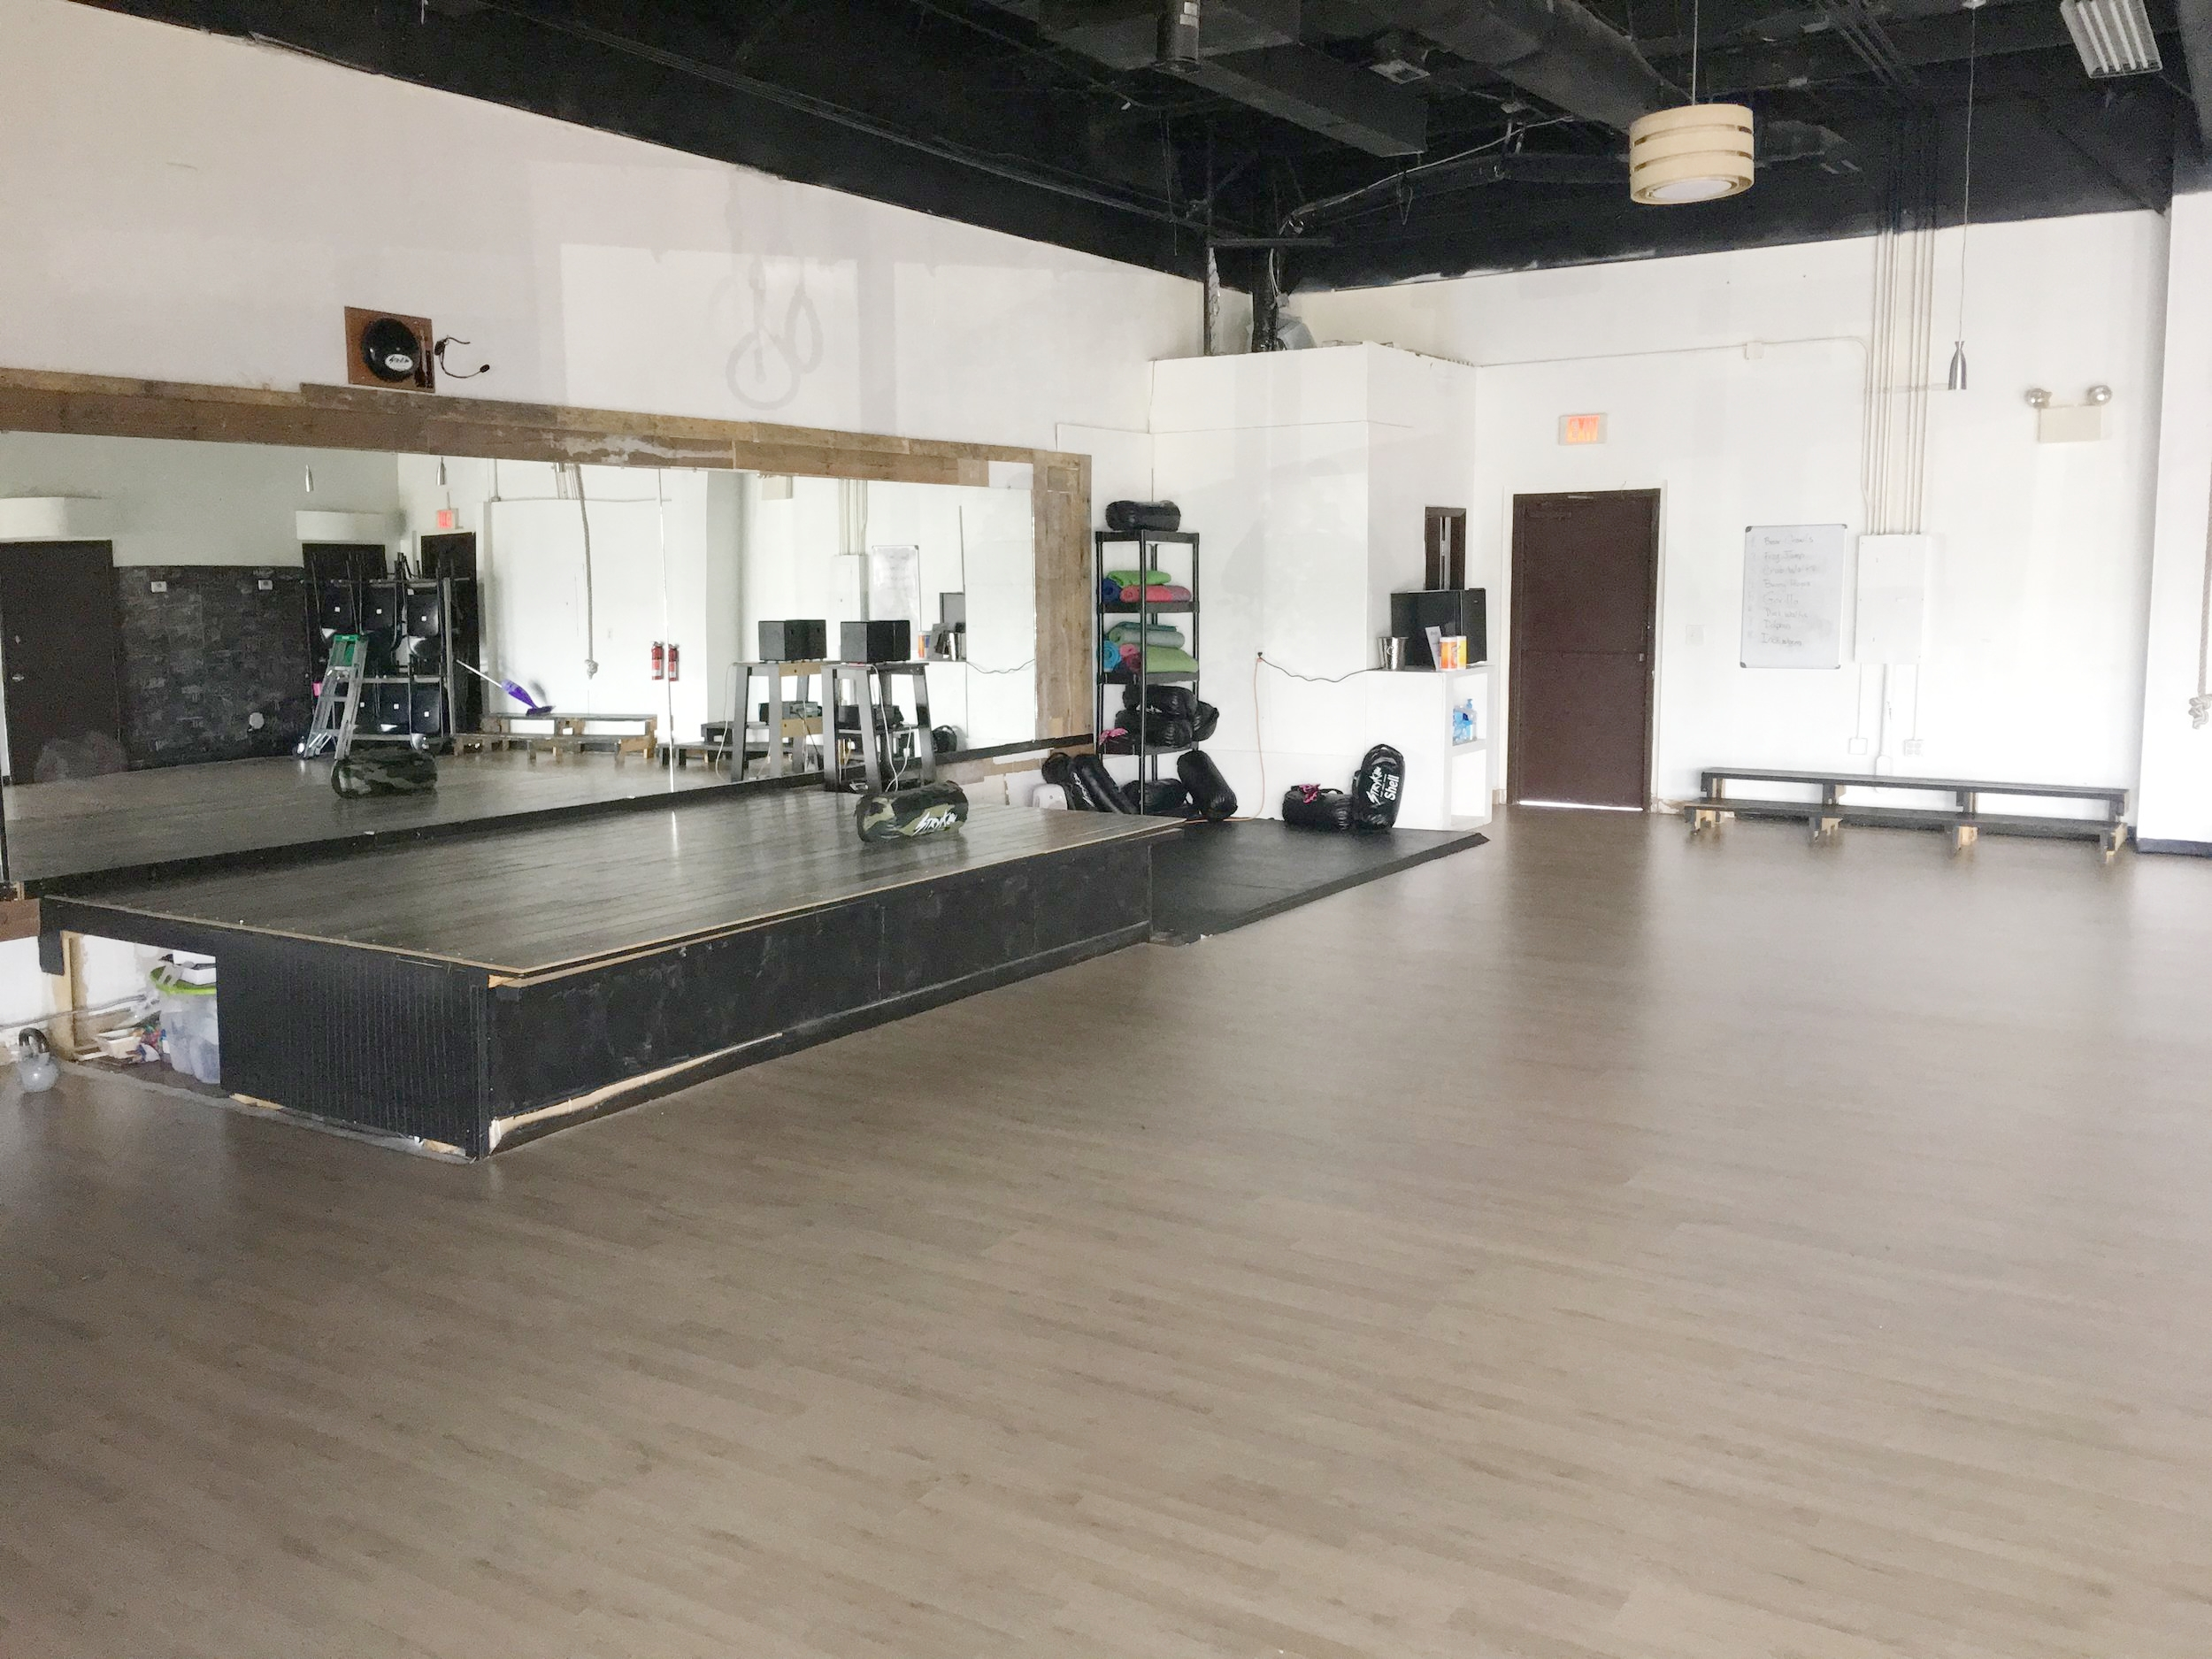 Stryke Fitness Studio Charleston SC Fight Dance Fitness Workout9.JPG